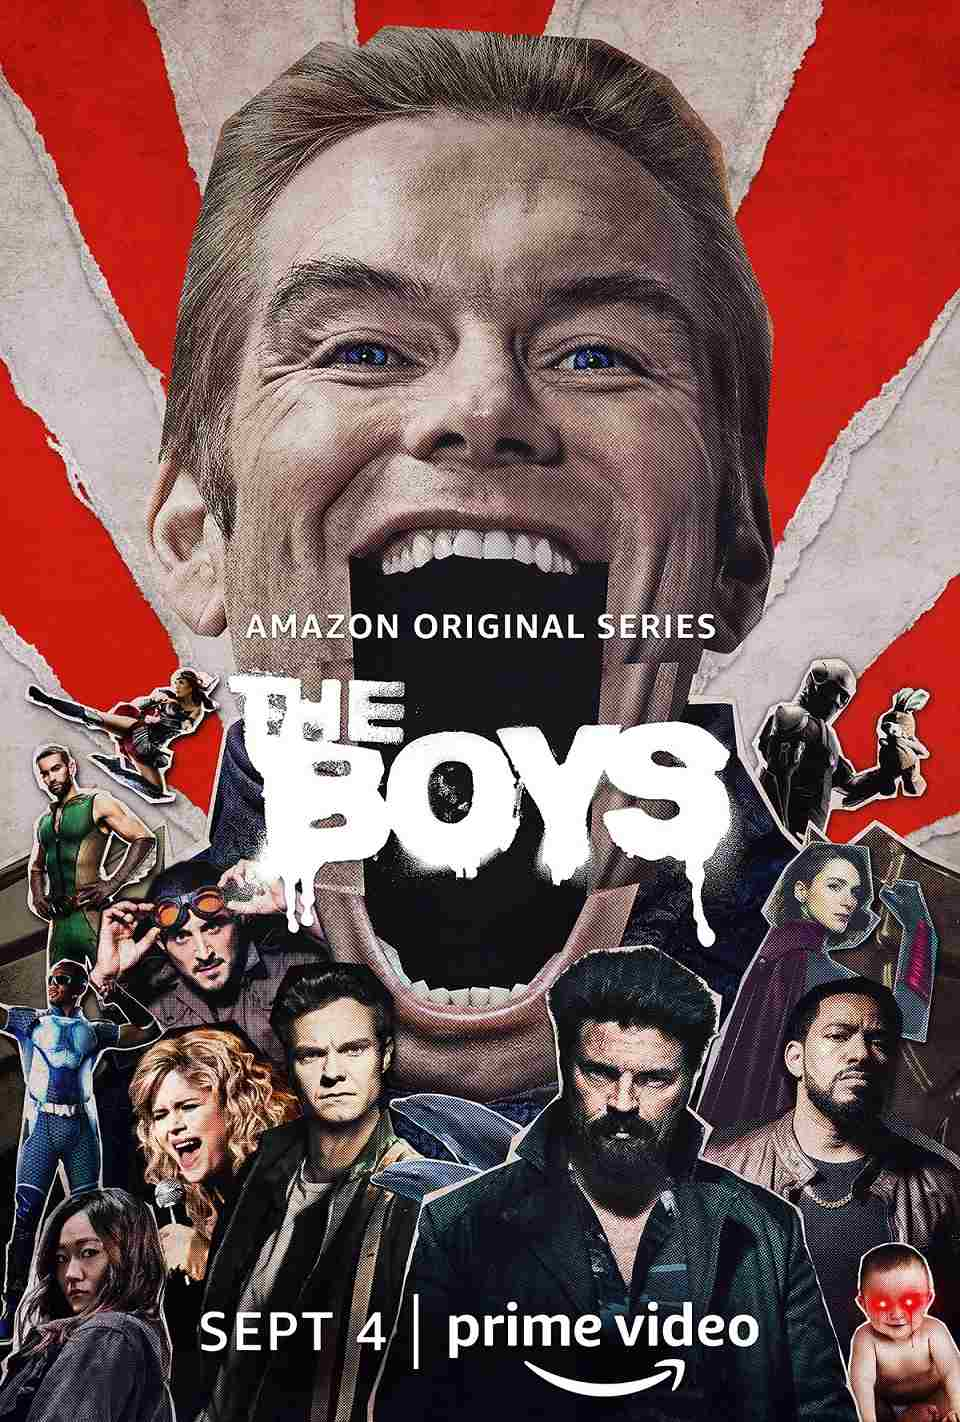 The Boys Season Two is premiering on Prime Video on September 4